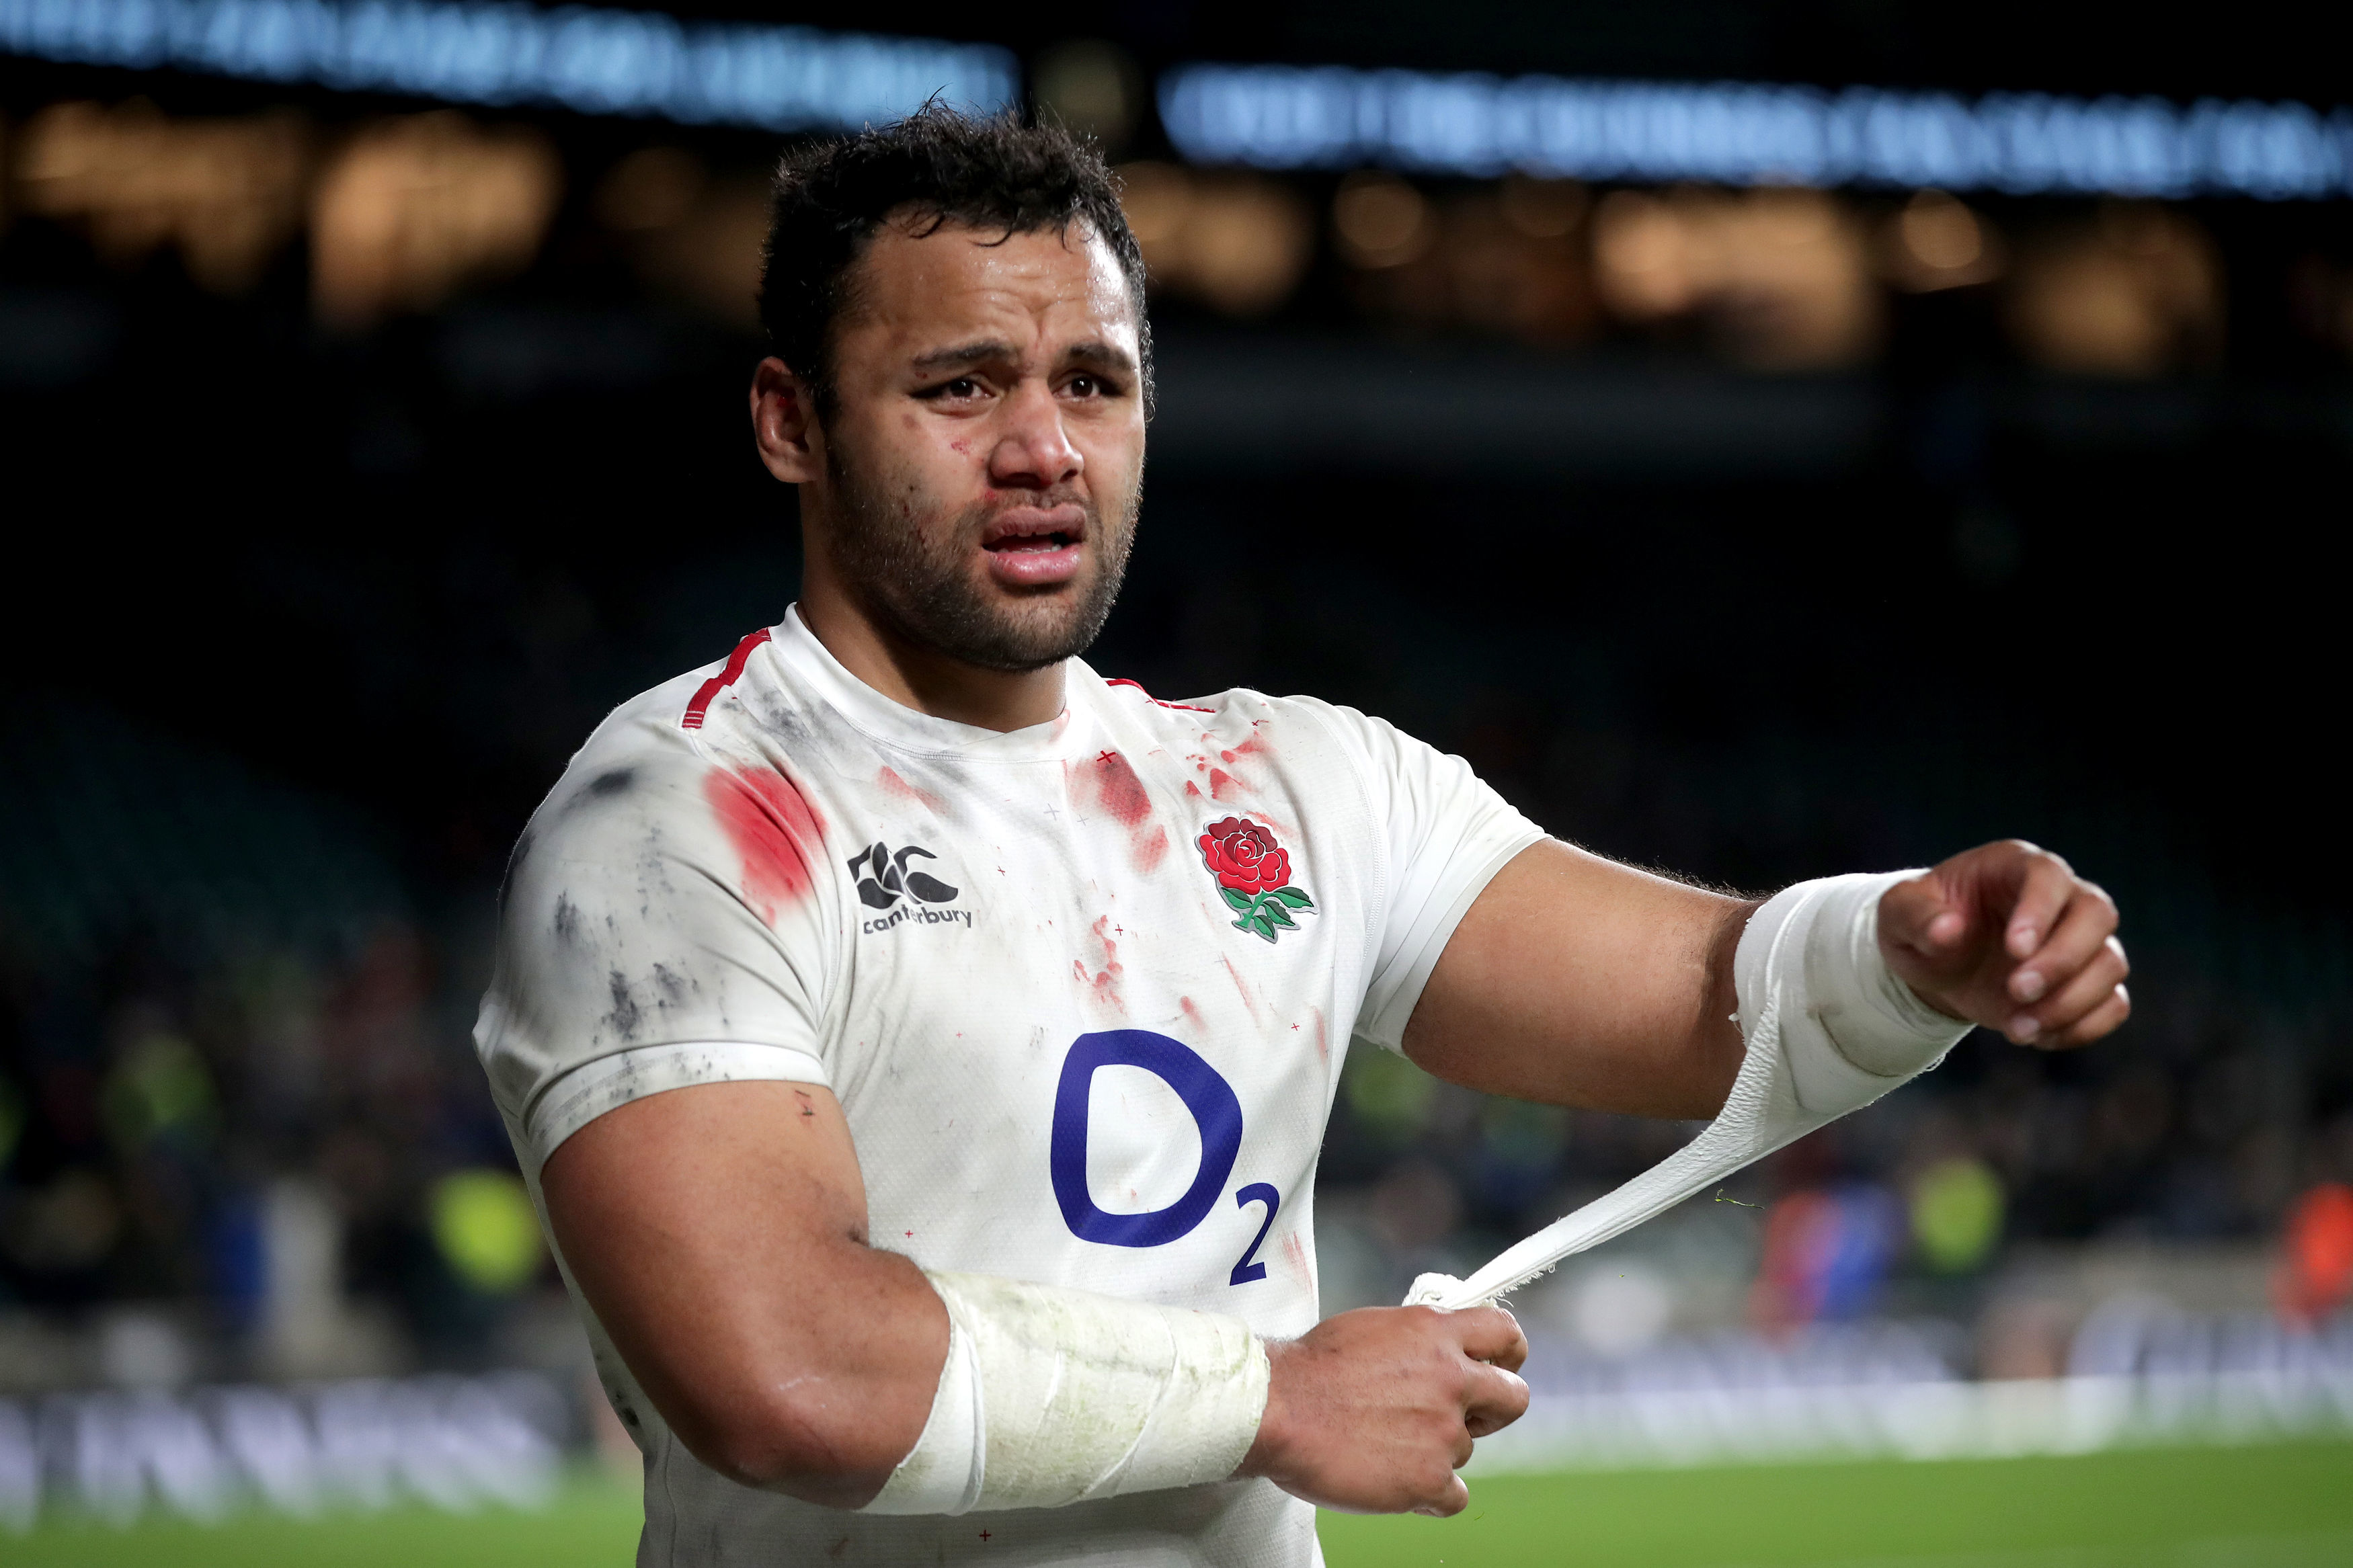 Saracens star Billy Vunipola has been warned over his future conduct by England